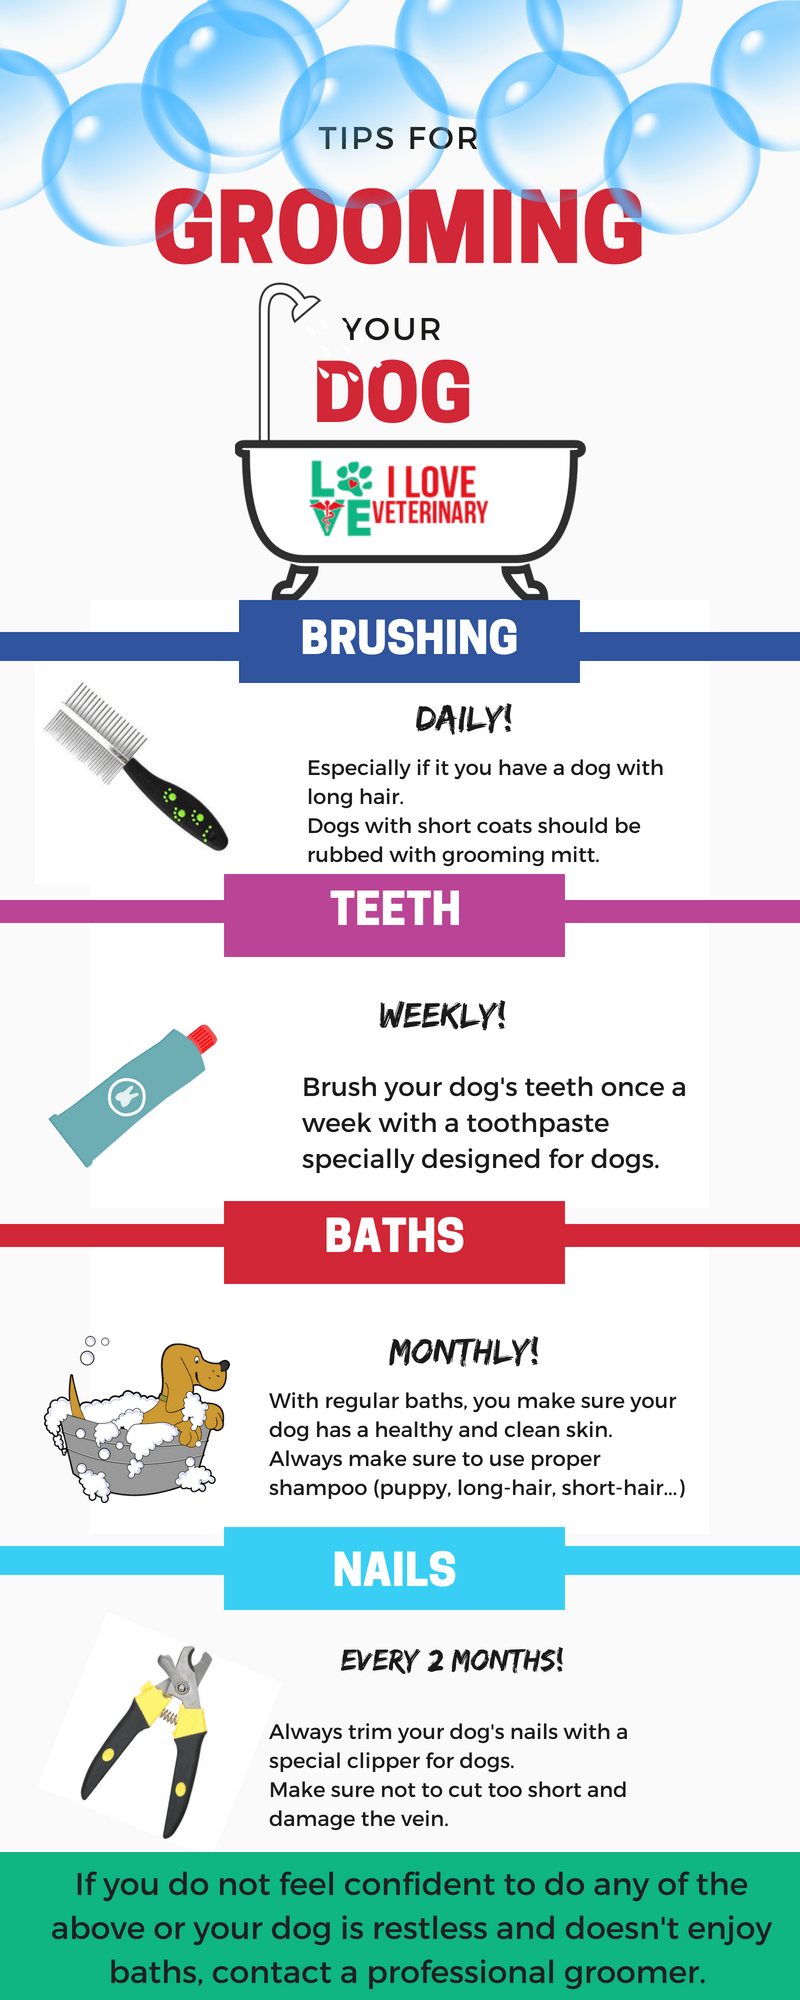 Tips For Grooming Your Dog I Love Veterinary Grooming Pet Health Care Veterinary